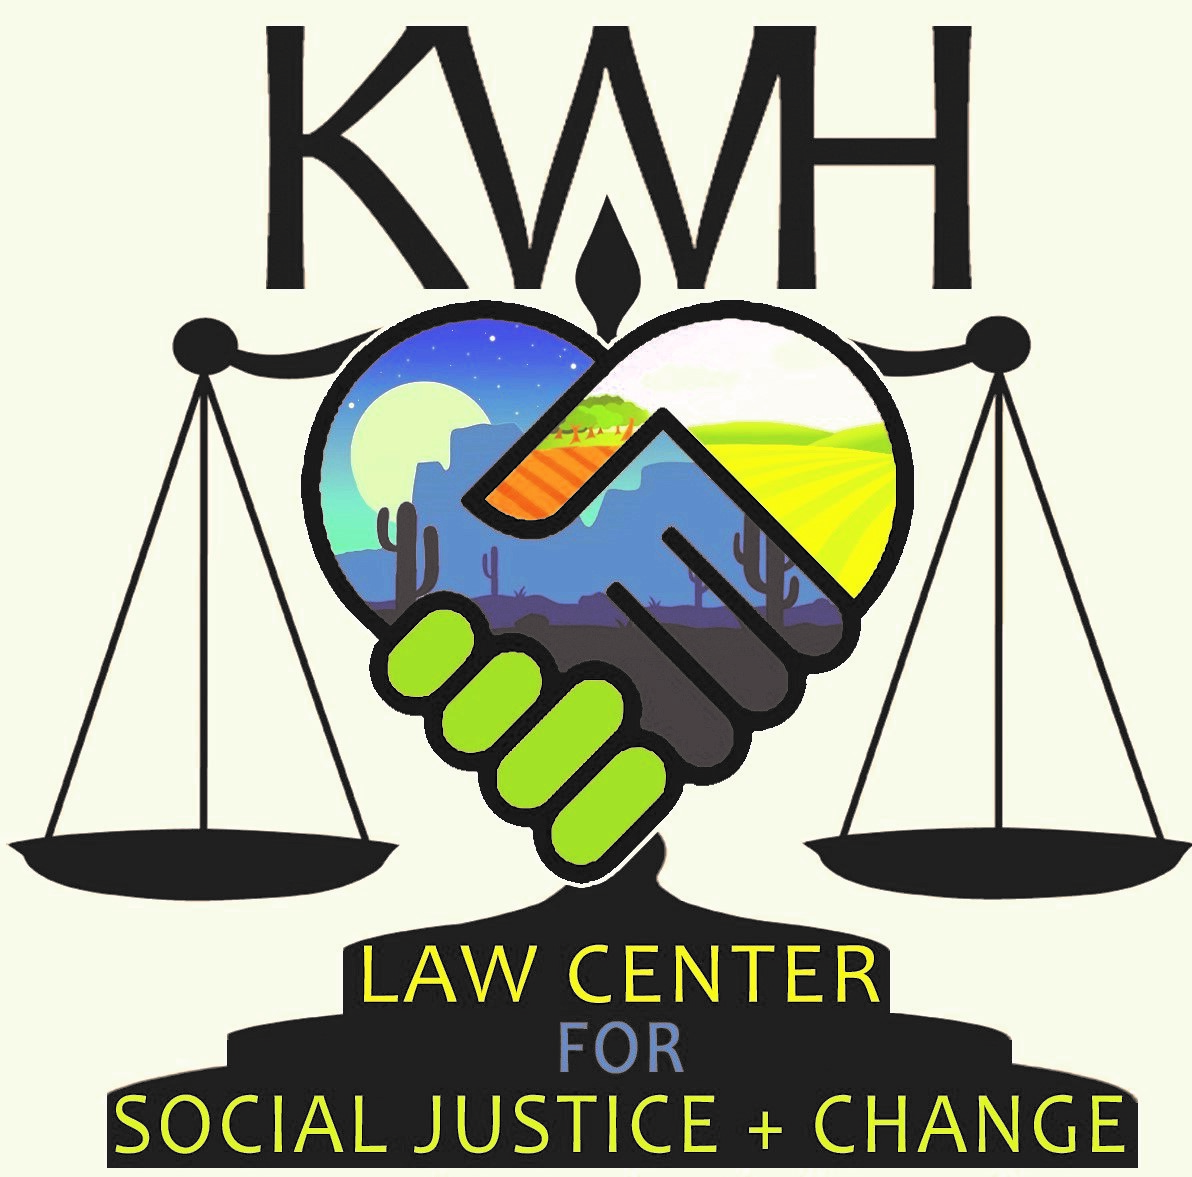 KWK Law Center for Social Justice + Change